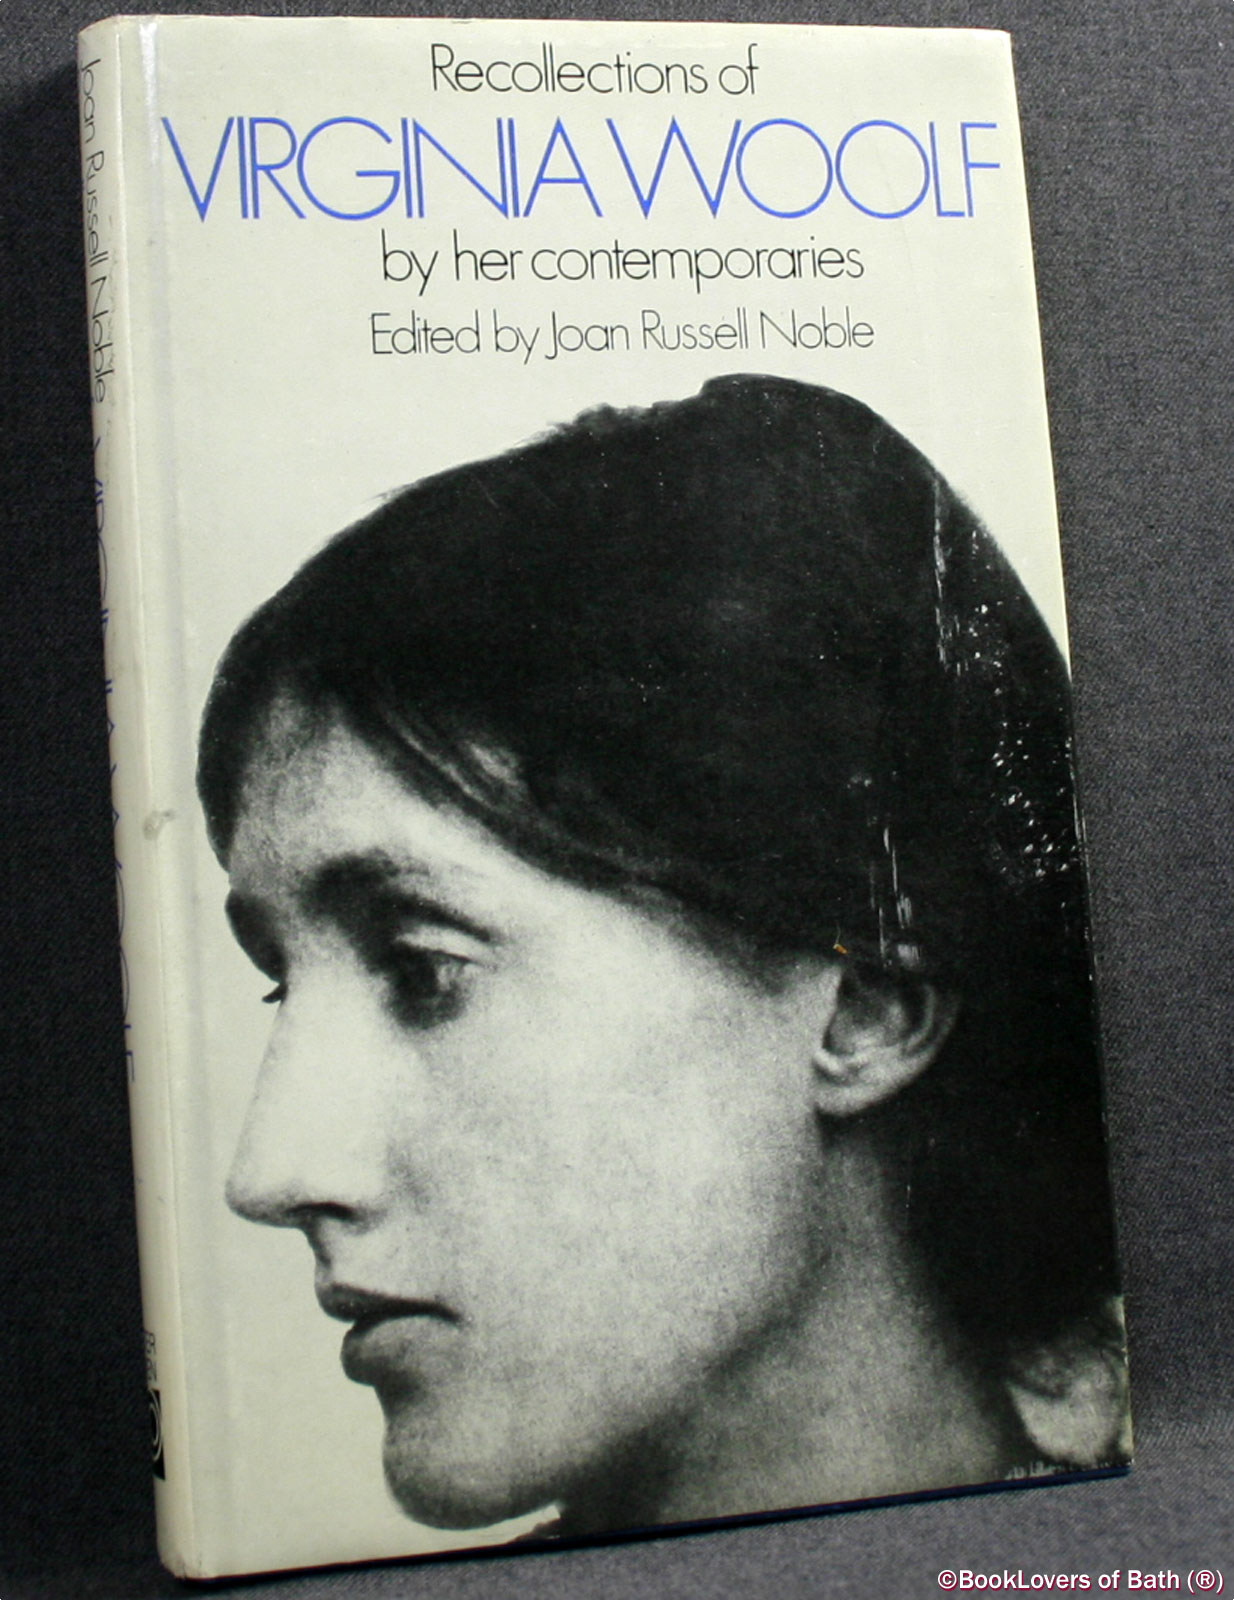 best virginia woolf essays Online essays by virginia woolf online essays by virginia woolf low prices on best sellers, new releases & classicsabout essays on the self questions of identity and individual experience are addressed by virgina woolf in this superb collection the notting hill editions classicwpp online essay virginia woolf online essays how.